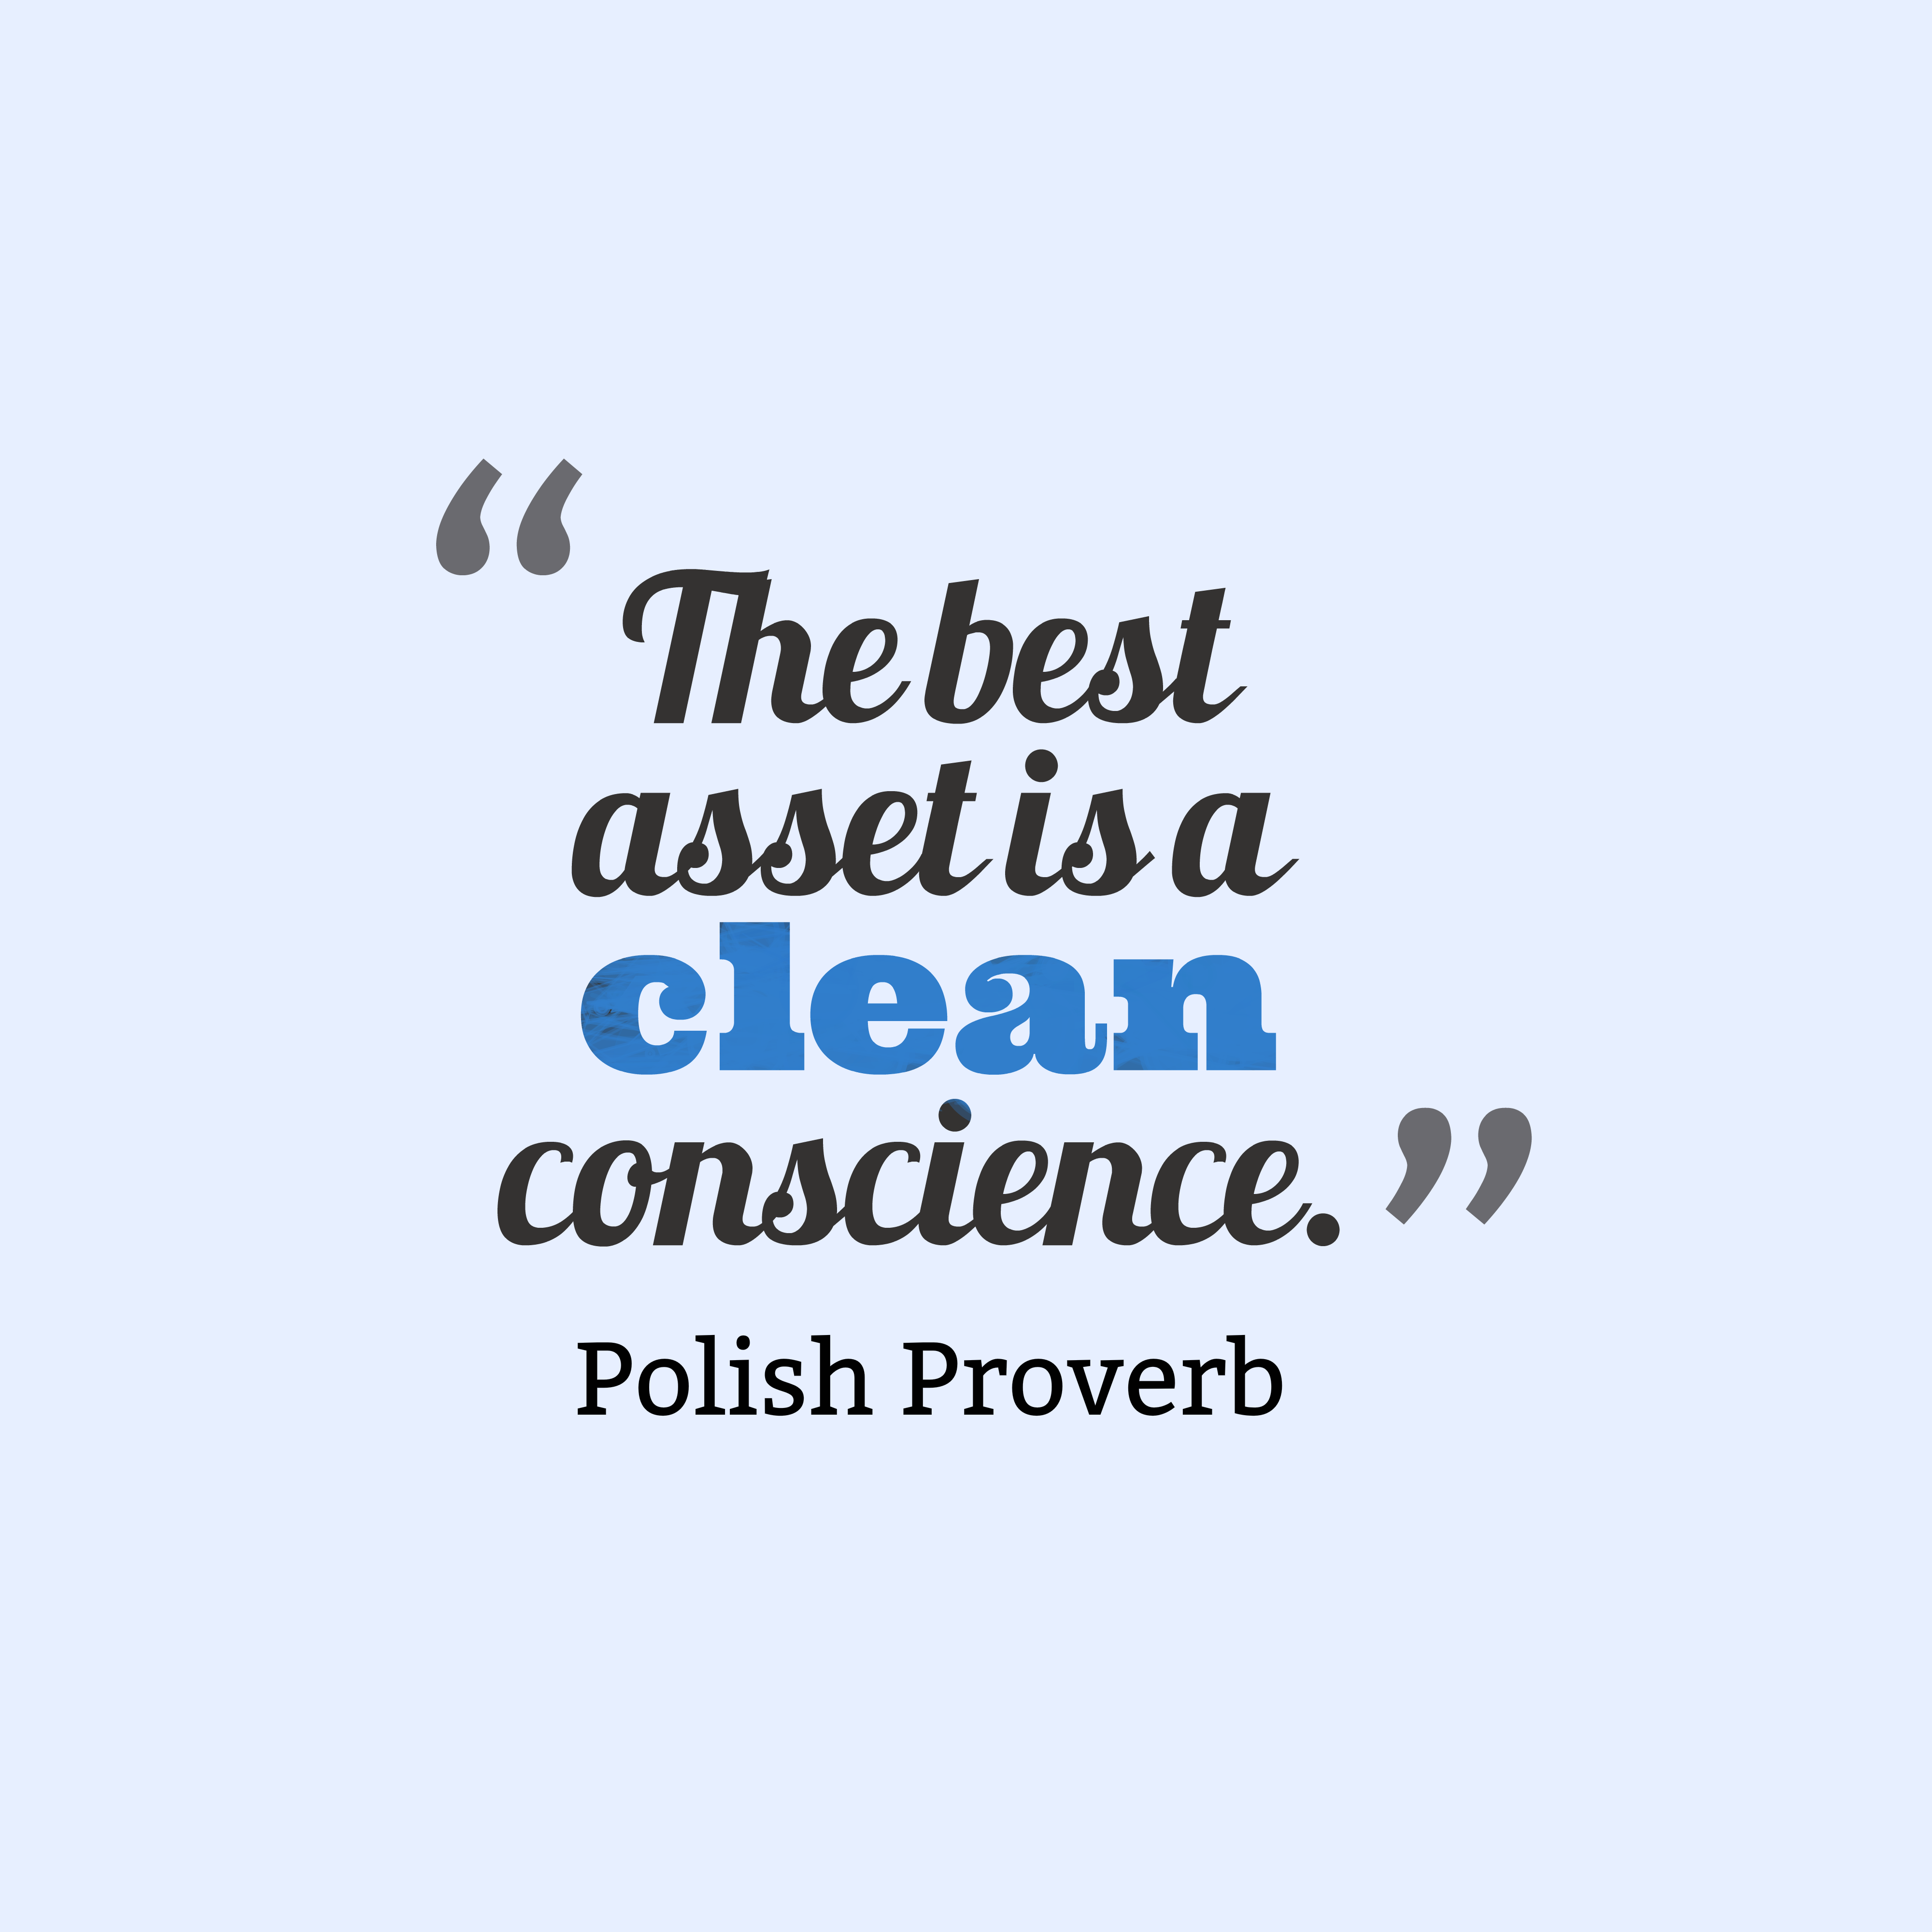 Quotes image of The best asset is a clean conscience.